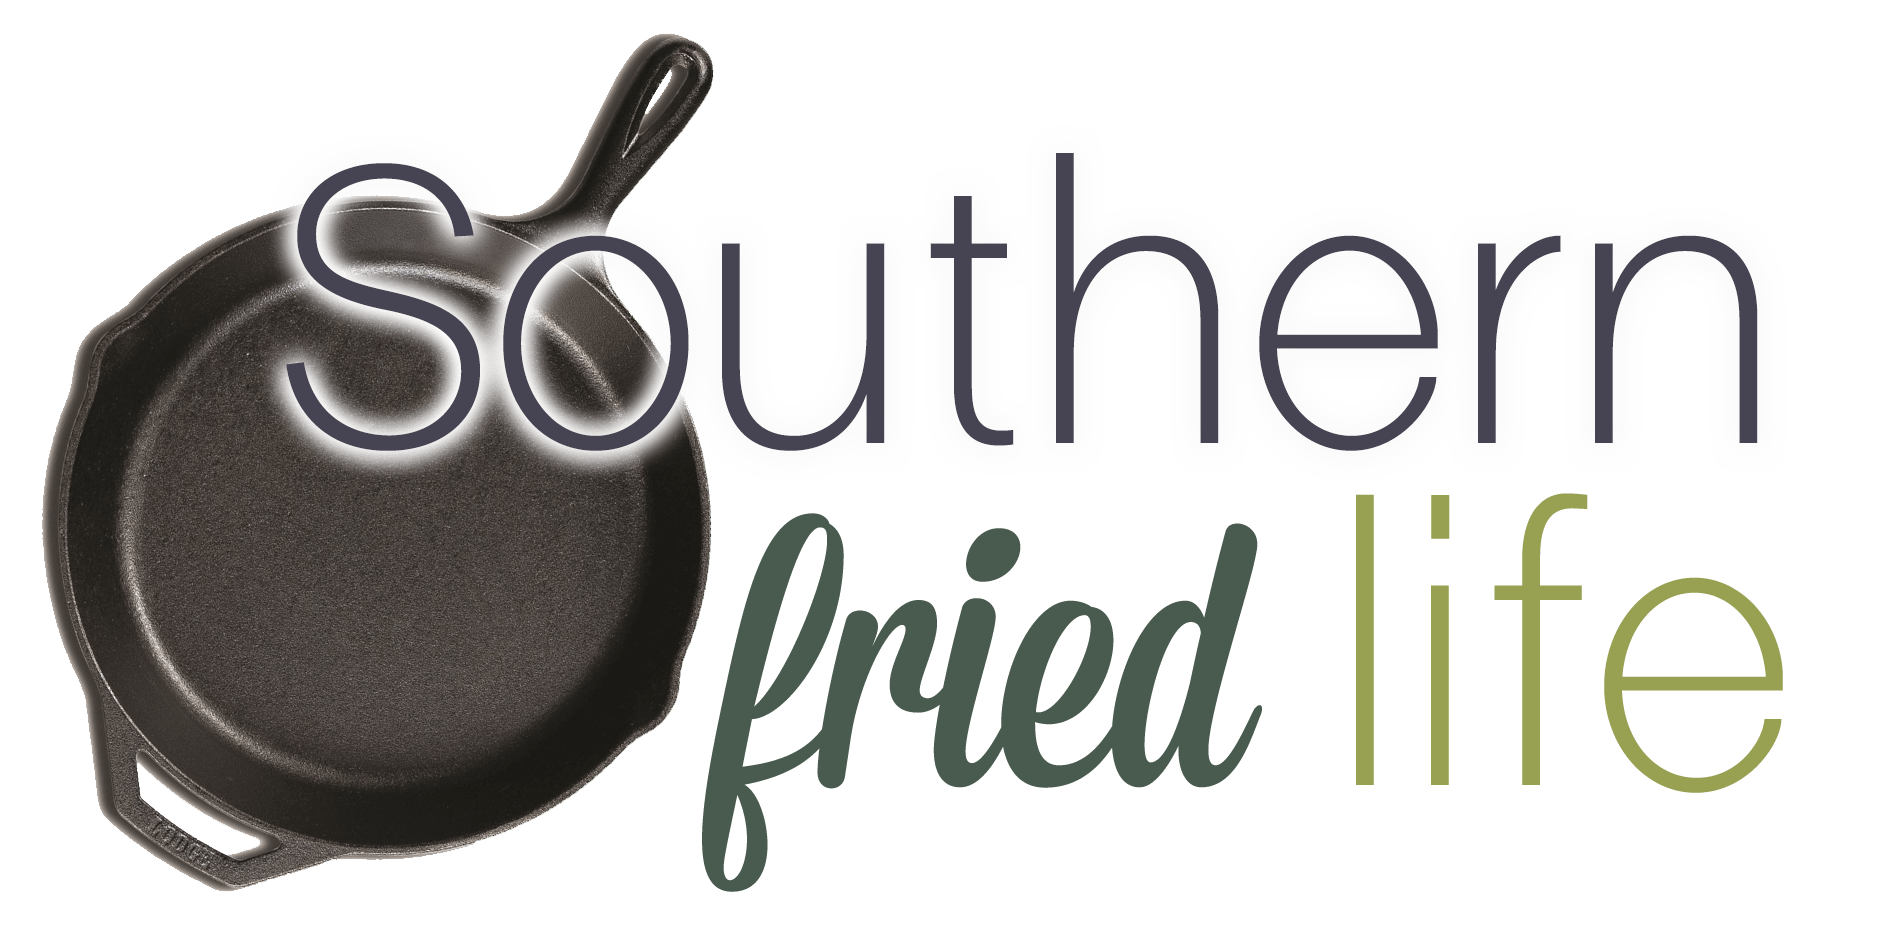 Southern Fried Life